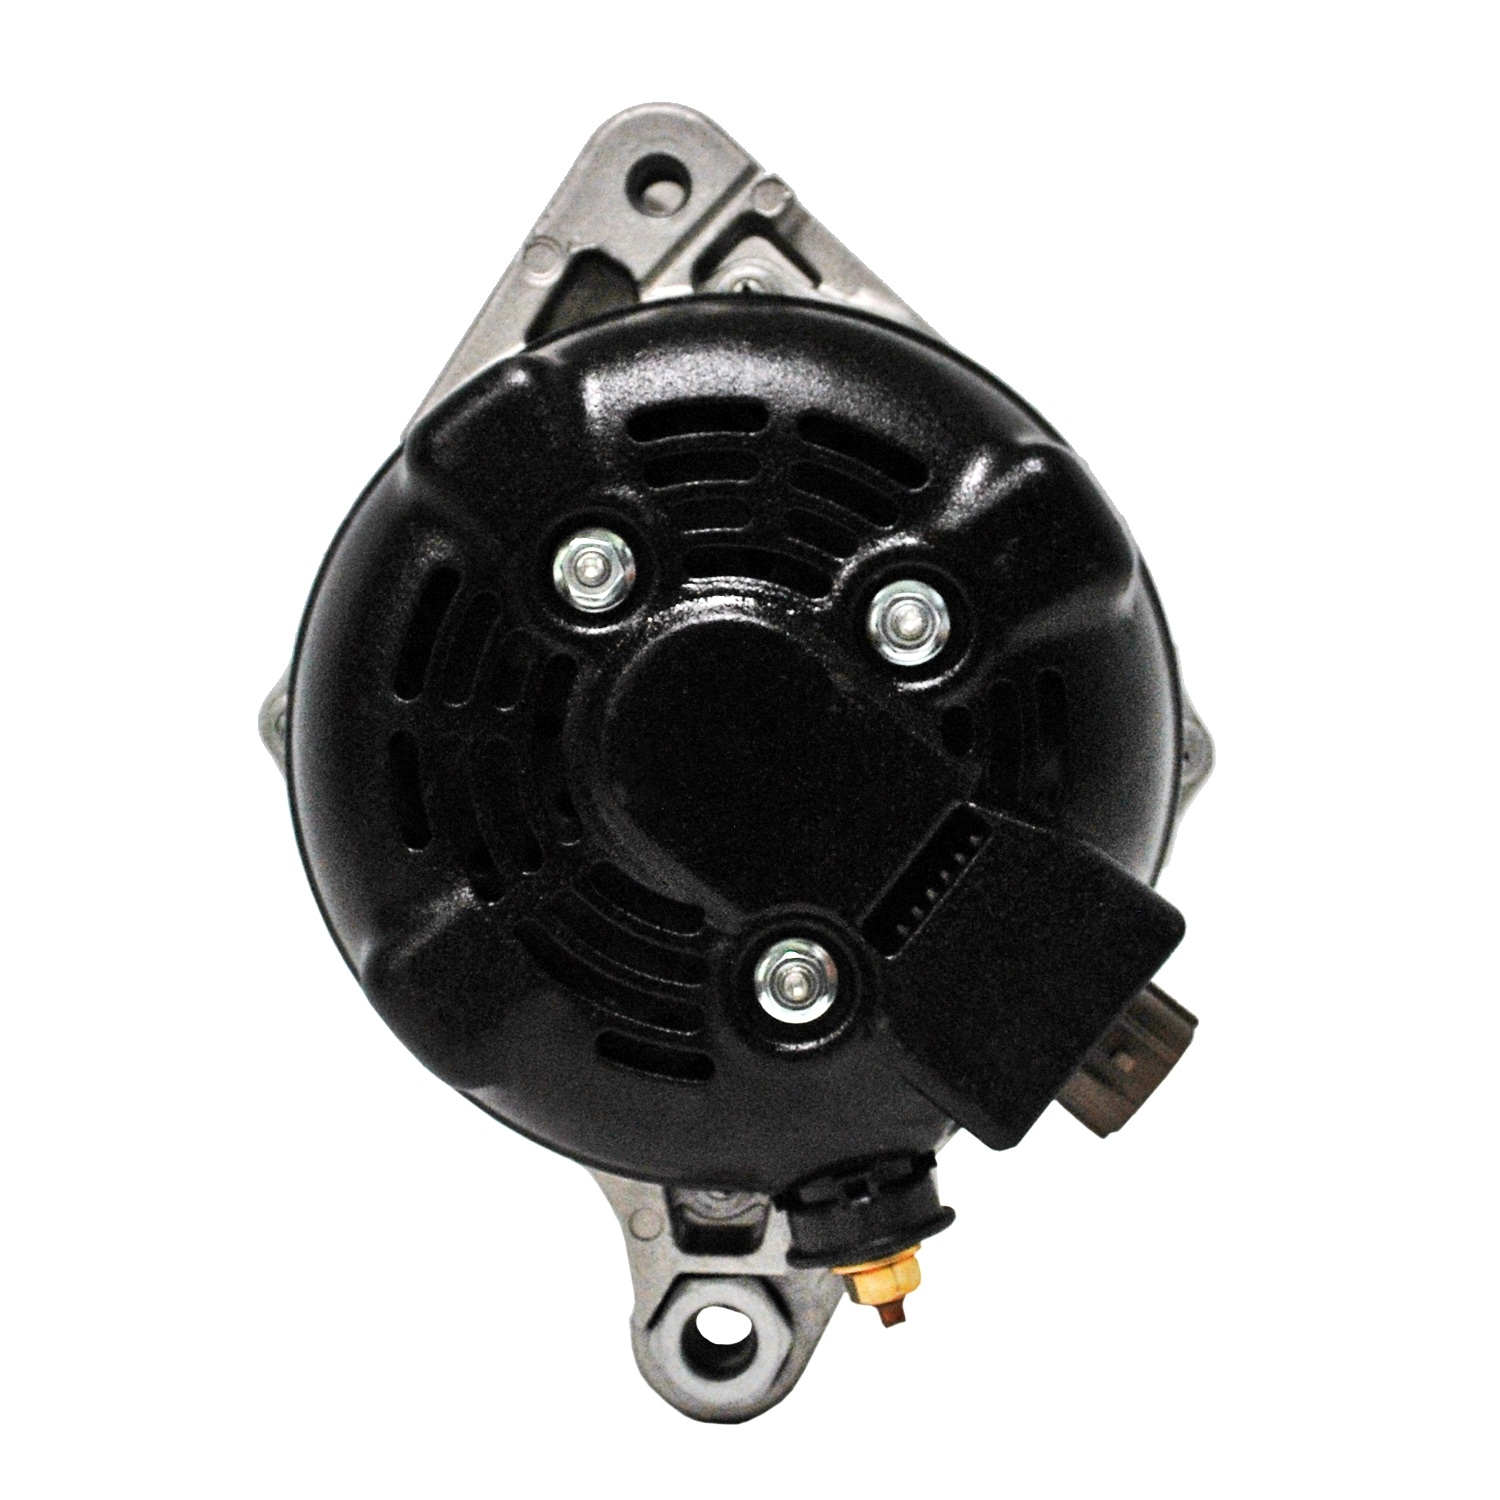 ACDELCO GOLD/PROFESSIONAL - Reman Alternator - DCC 334-2926A